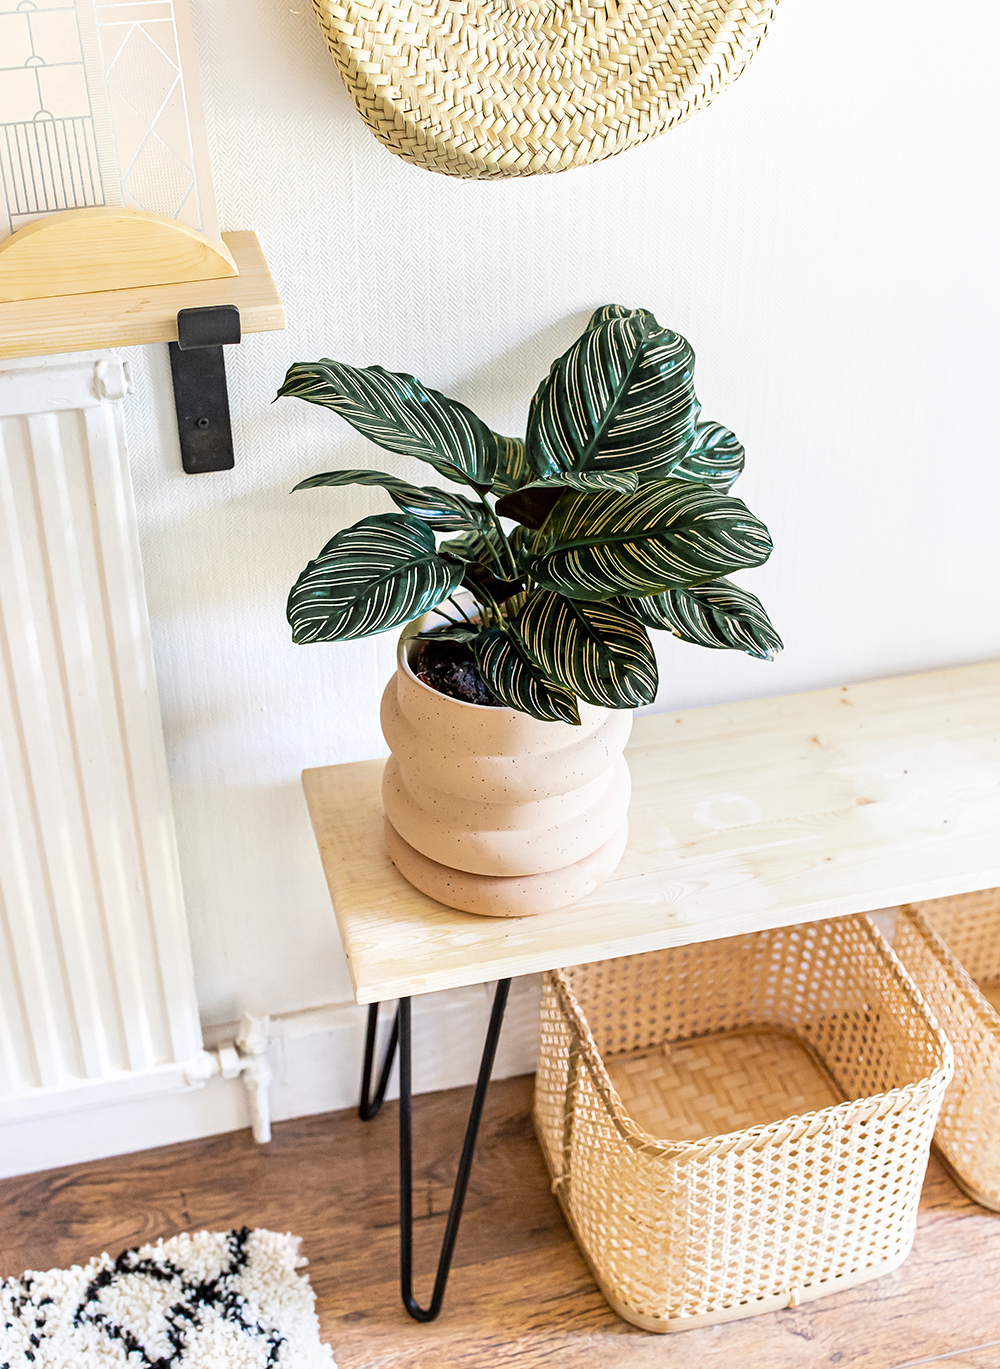 Pinstripe-Plant-Calathea-Ornata-Sanderiana-scandens-kelseyinlondon-homewithkelsey-plant-guide-best-indoor-plants